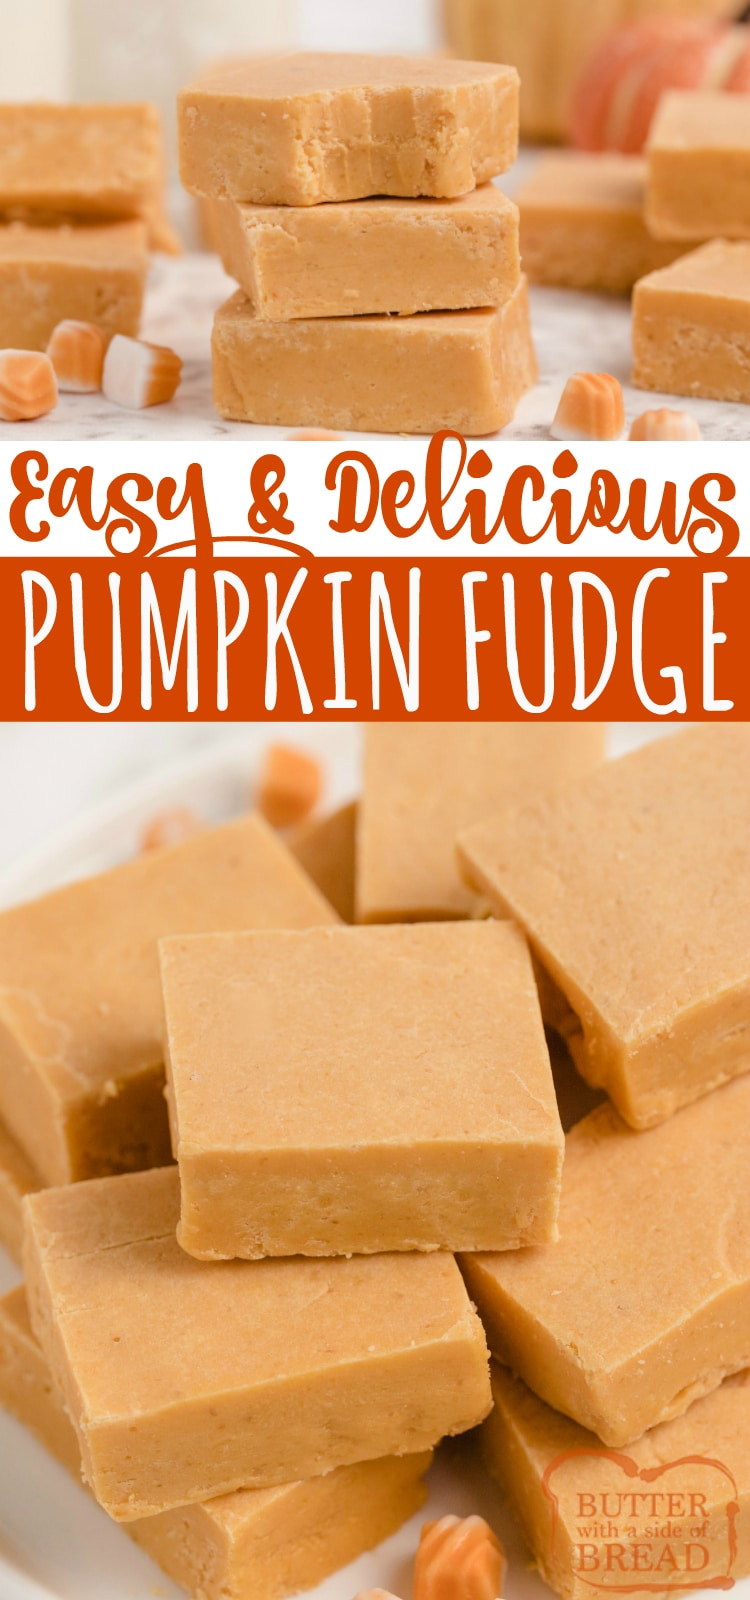 Easy Pumpkin Fudge made with pumpkin, cinnamon chips, marshmallow creme and a few other basic ingredients. One of our favorite fall candy recipes!